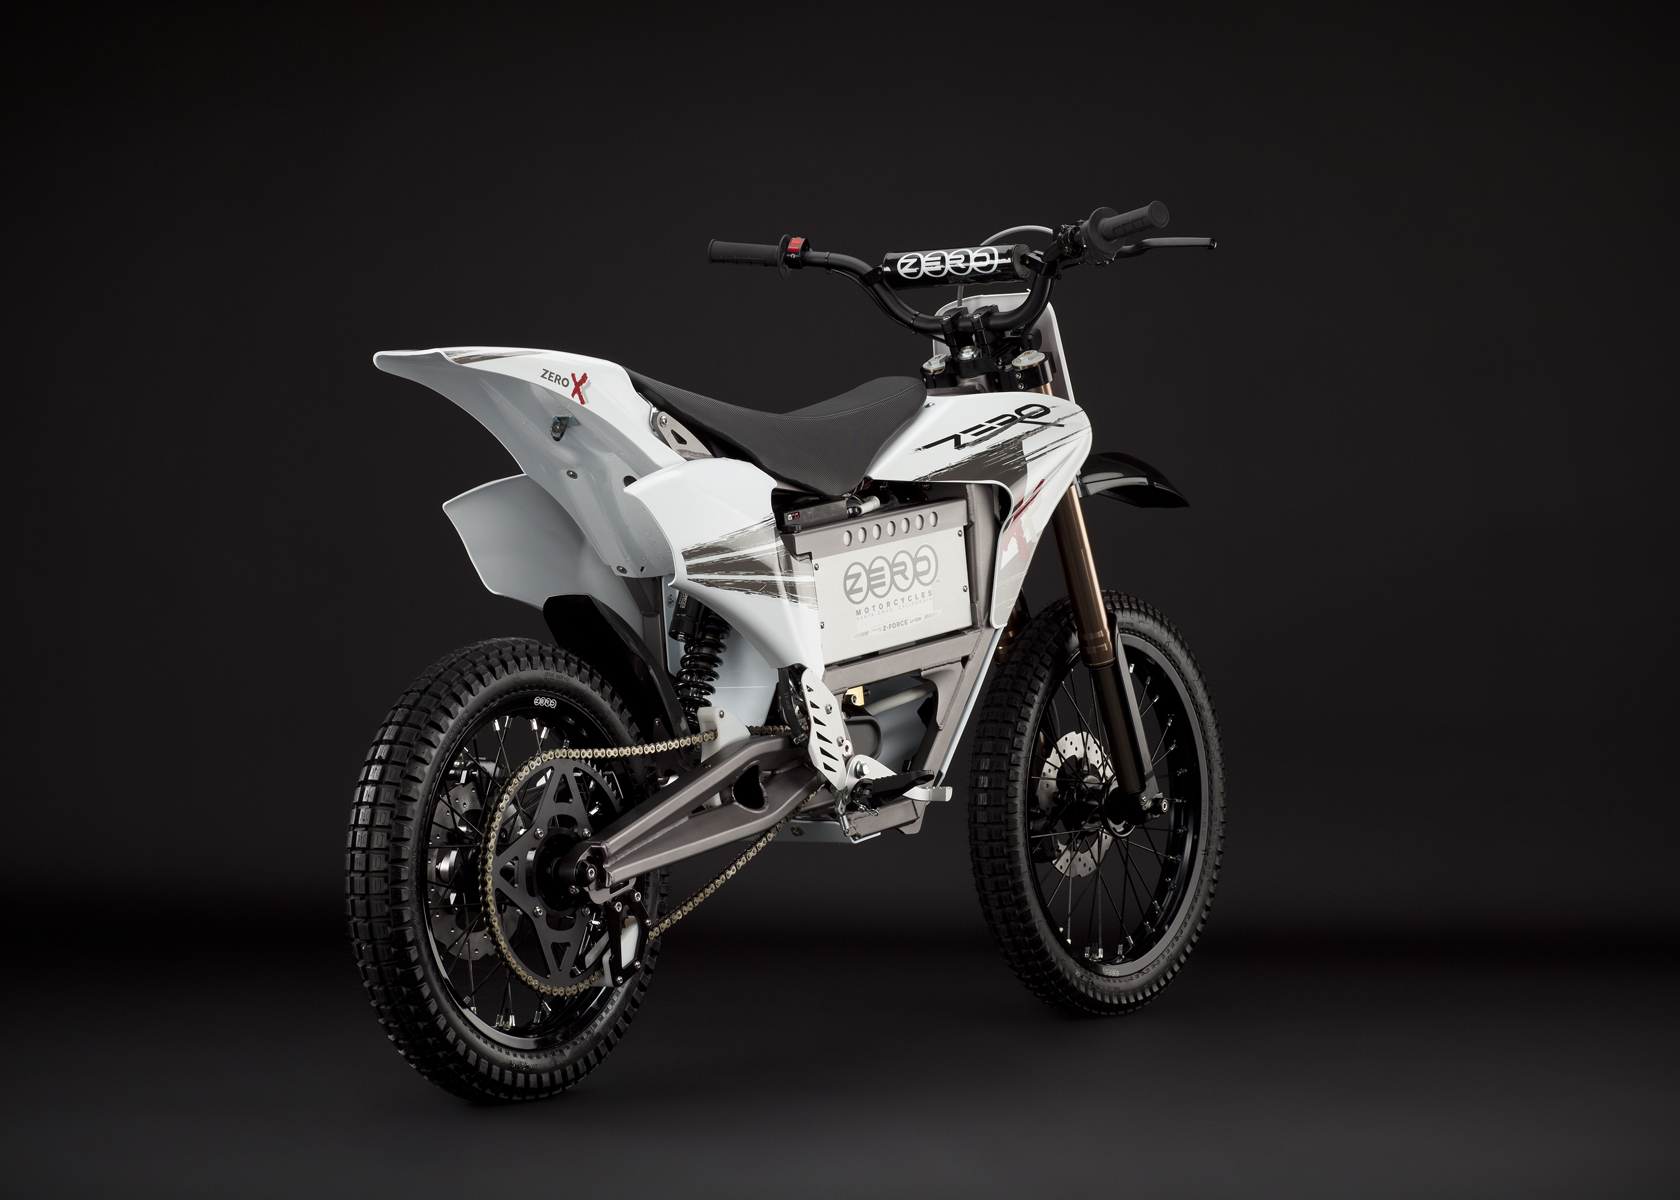 '.2011 Zero X Electric Motorcycle: Rear View, Dirt Model.'